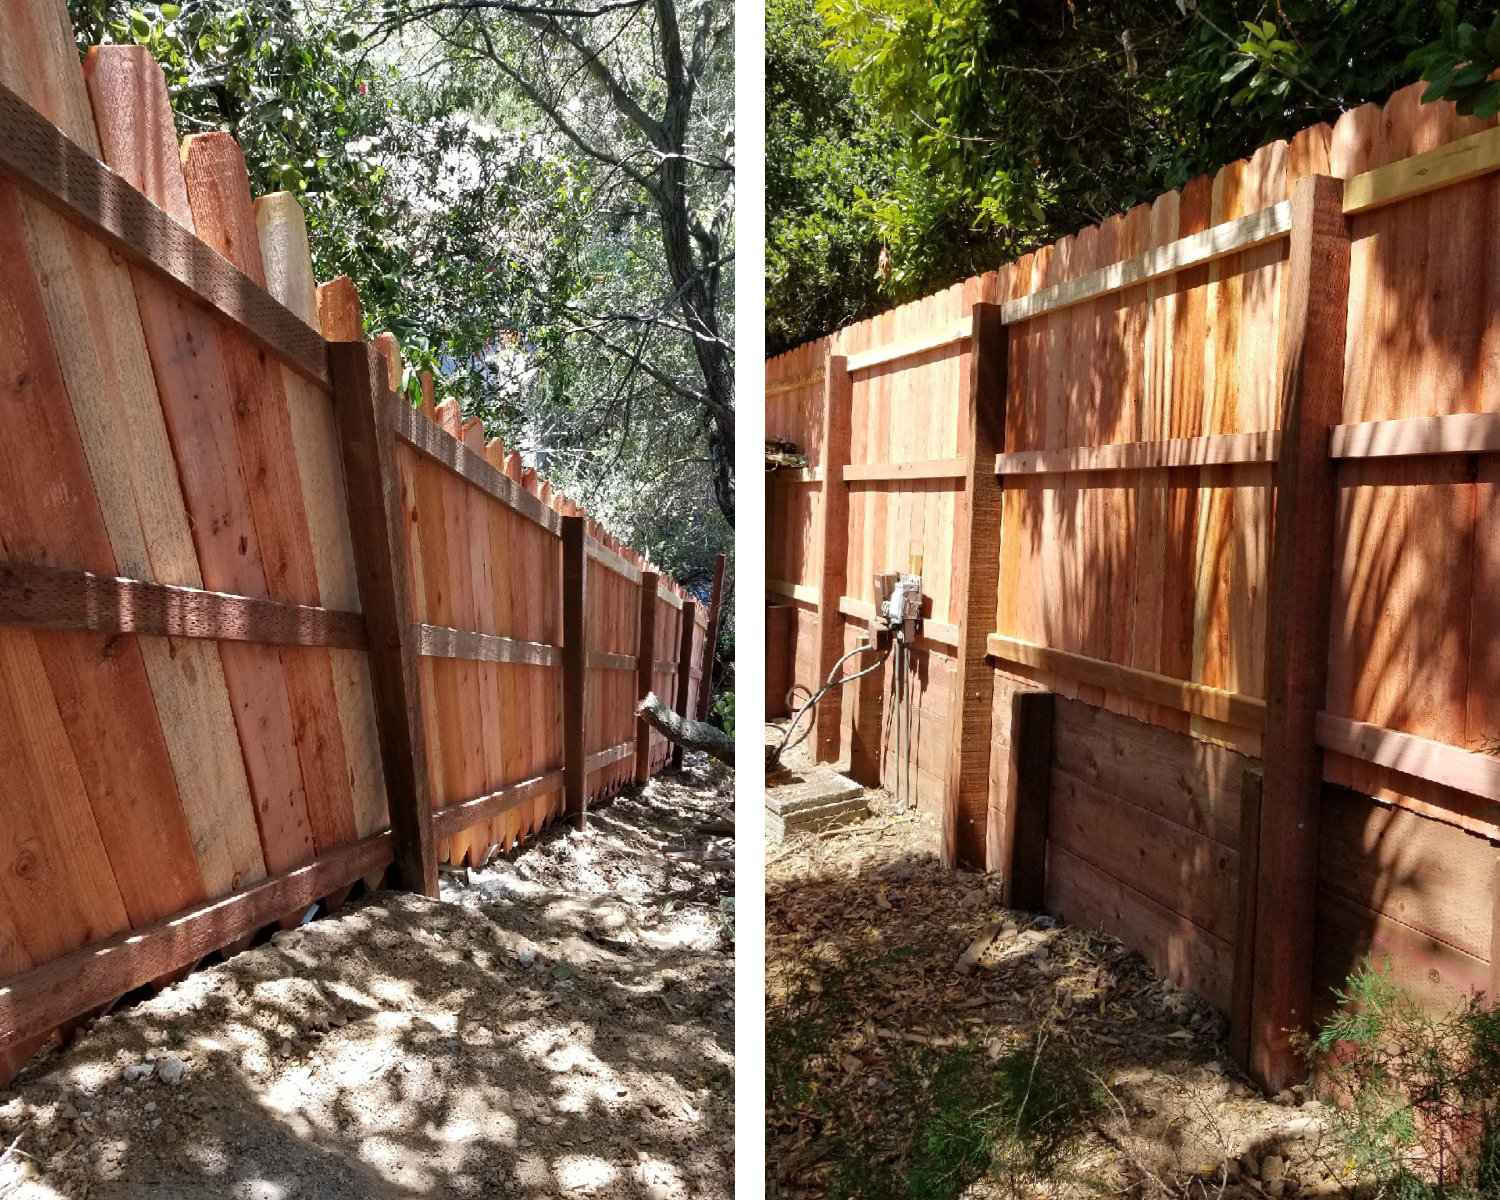 oakland-ca-nail-up-side-by-side-dog-ear-with-3-rails-and-nail-up-side-by-side-dog-ear-with-an-integrated-3-tall-retaining-wall